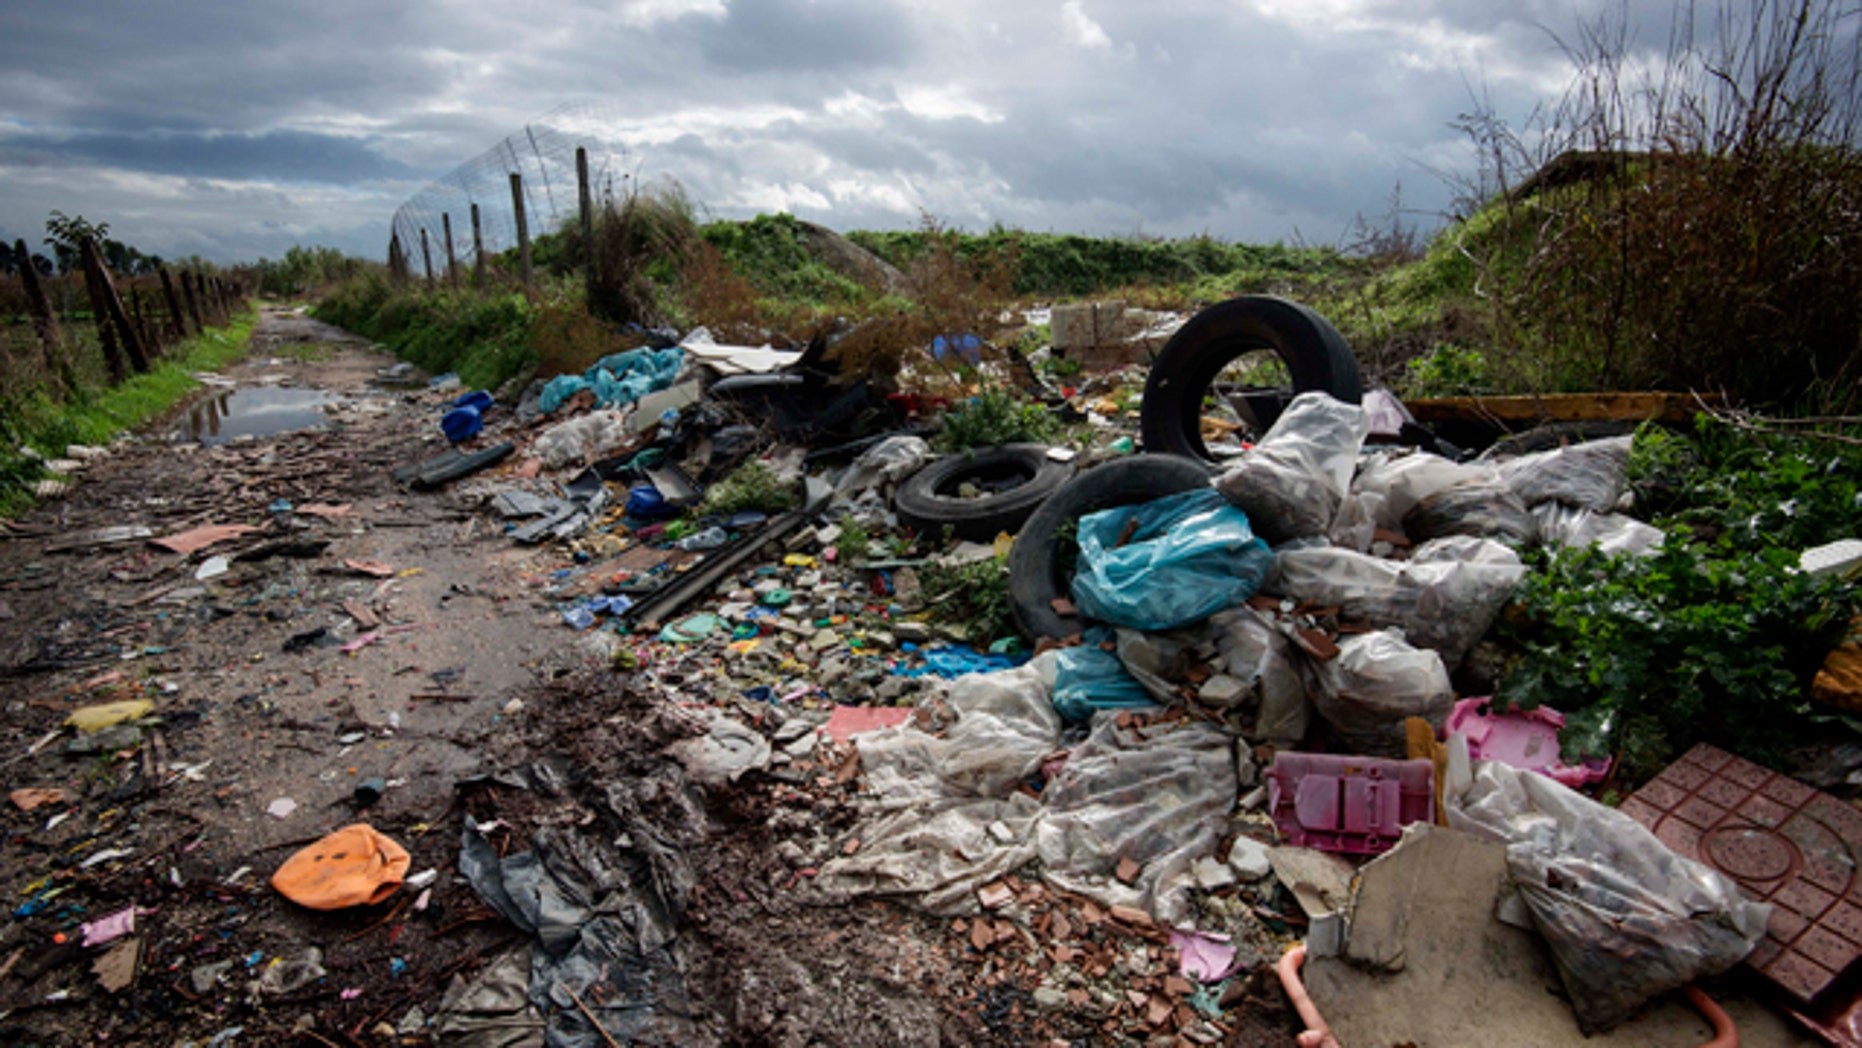 FILE -- In this Nov. 18, 2013 photo, rubbish is piled up on the edge of cultivated land near Caivano, in the surroundings of Naples, southern Italy.